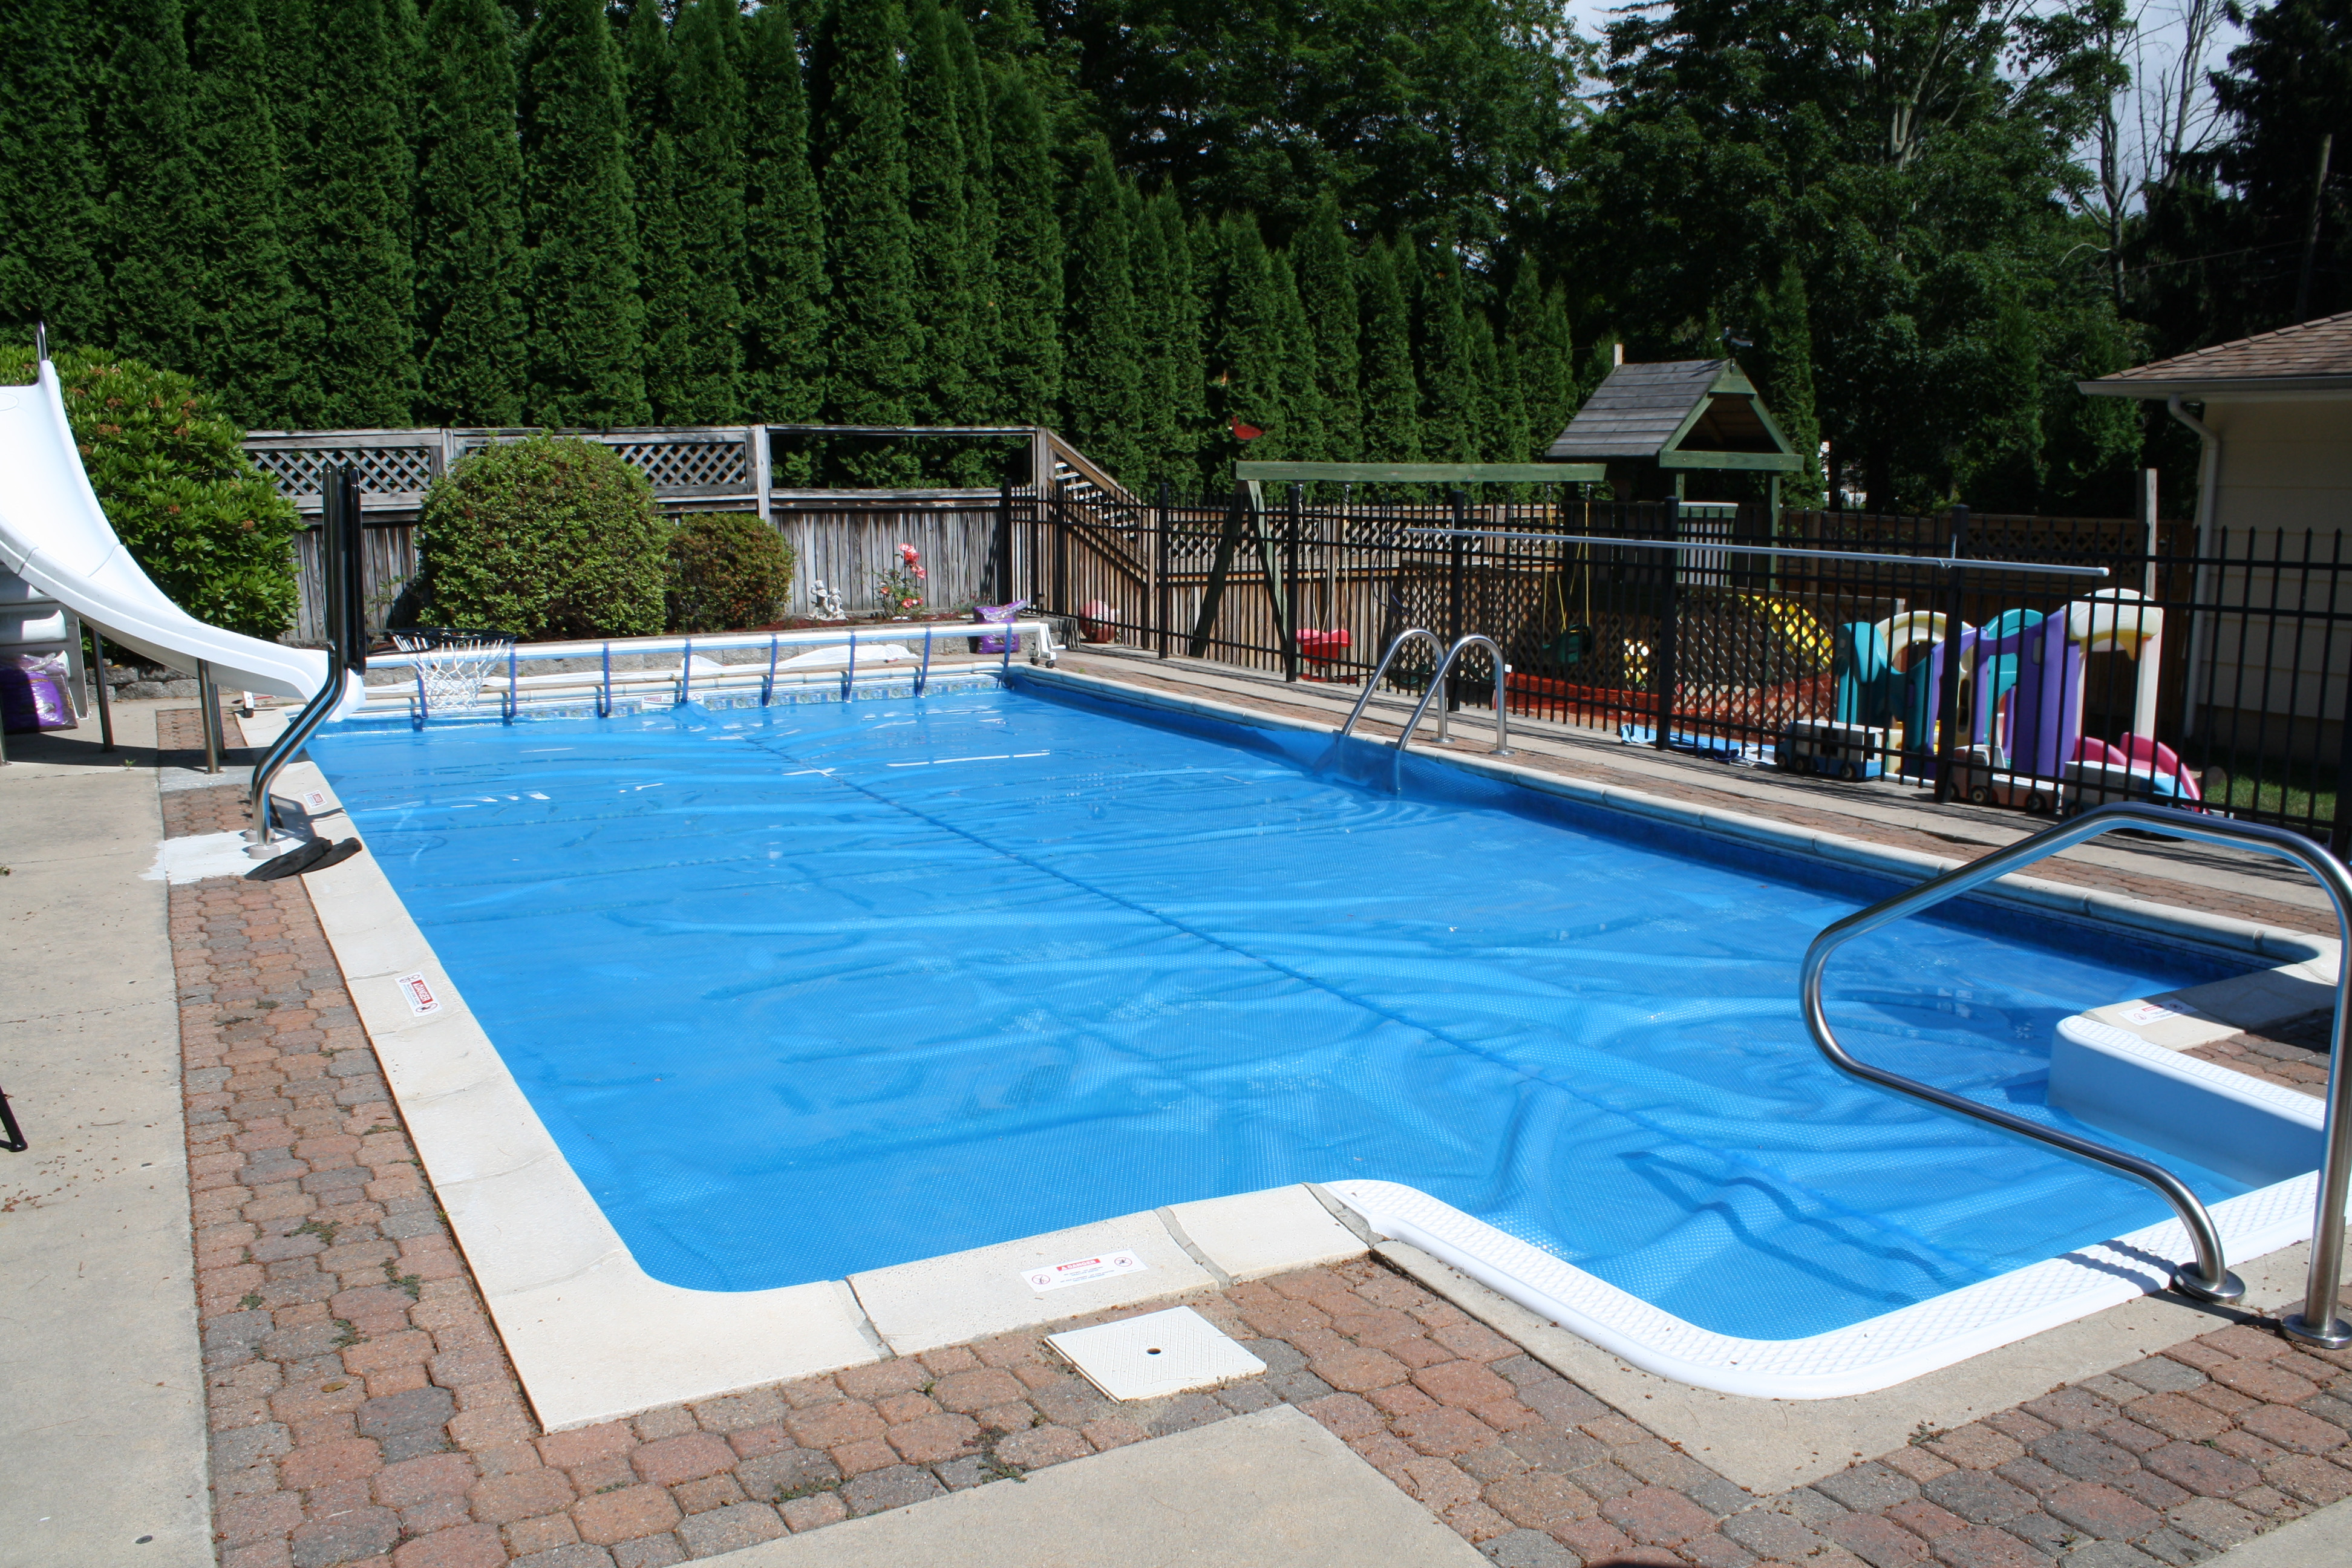 Best ideas about Solar Covers For Inground Pool . Save or Pin Spas & Pools Unlimited Inc Pools Now.